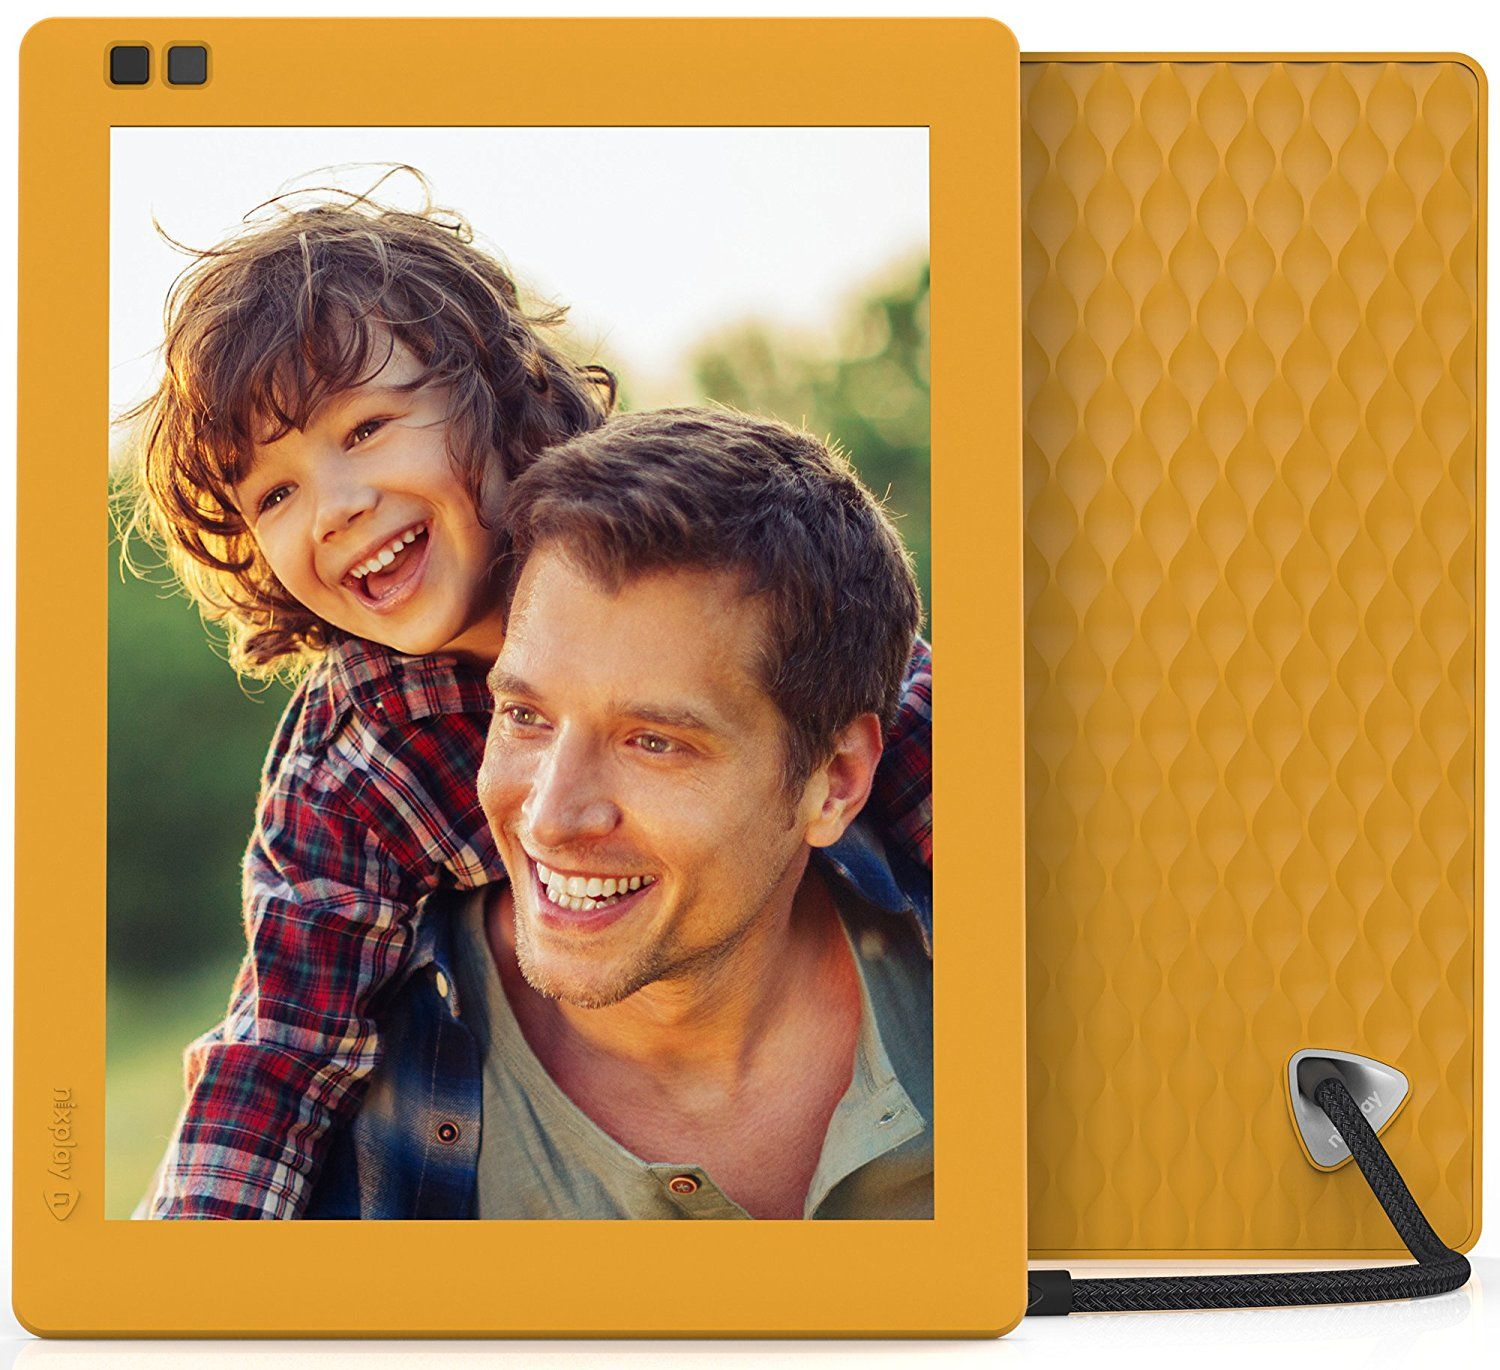 How a digital photo frame is essential for a digital camera how a digital photo frame is essential for a digital camera nixplay digital jeuxipadfo Gallery